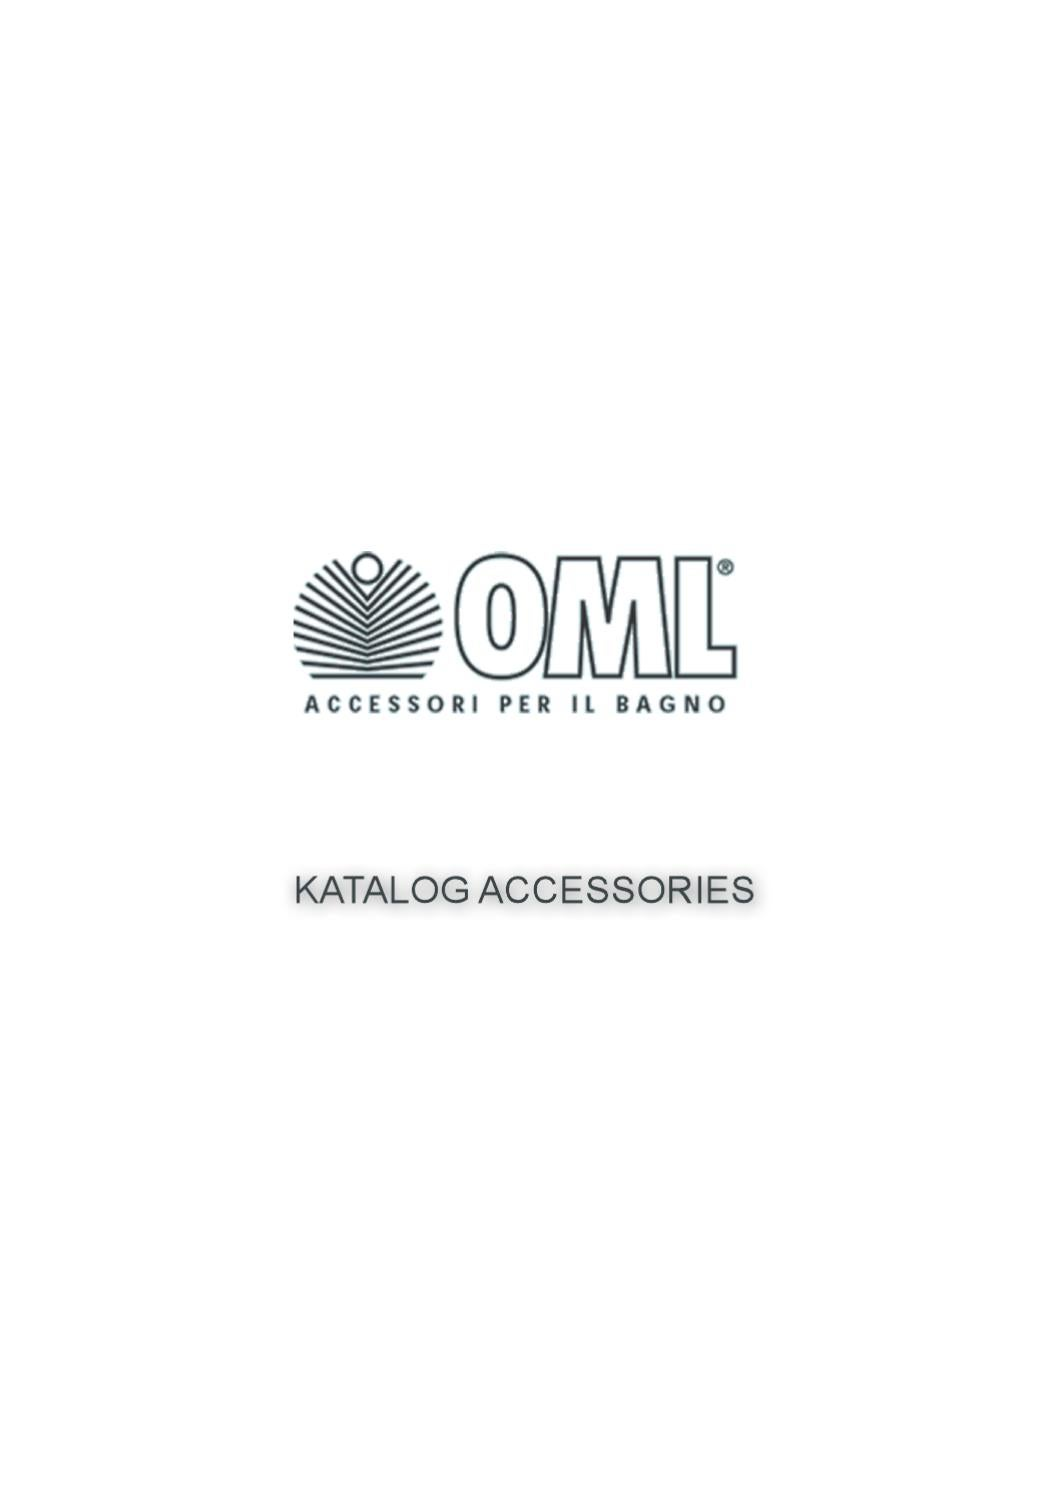 Oml Accessori Bagno Prezzi.Oml Accessories By Prodomus Issuu